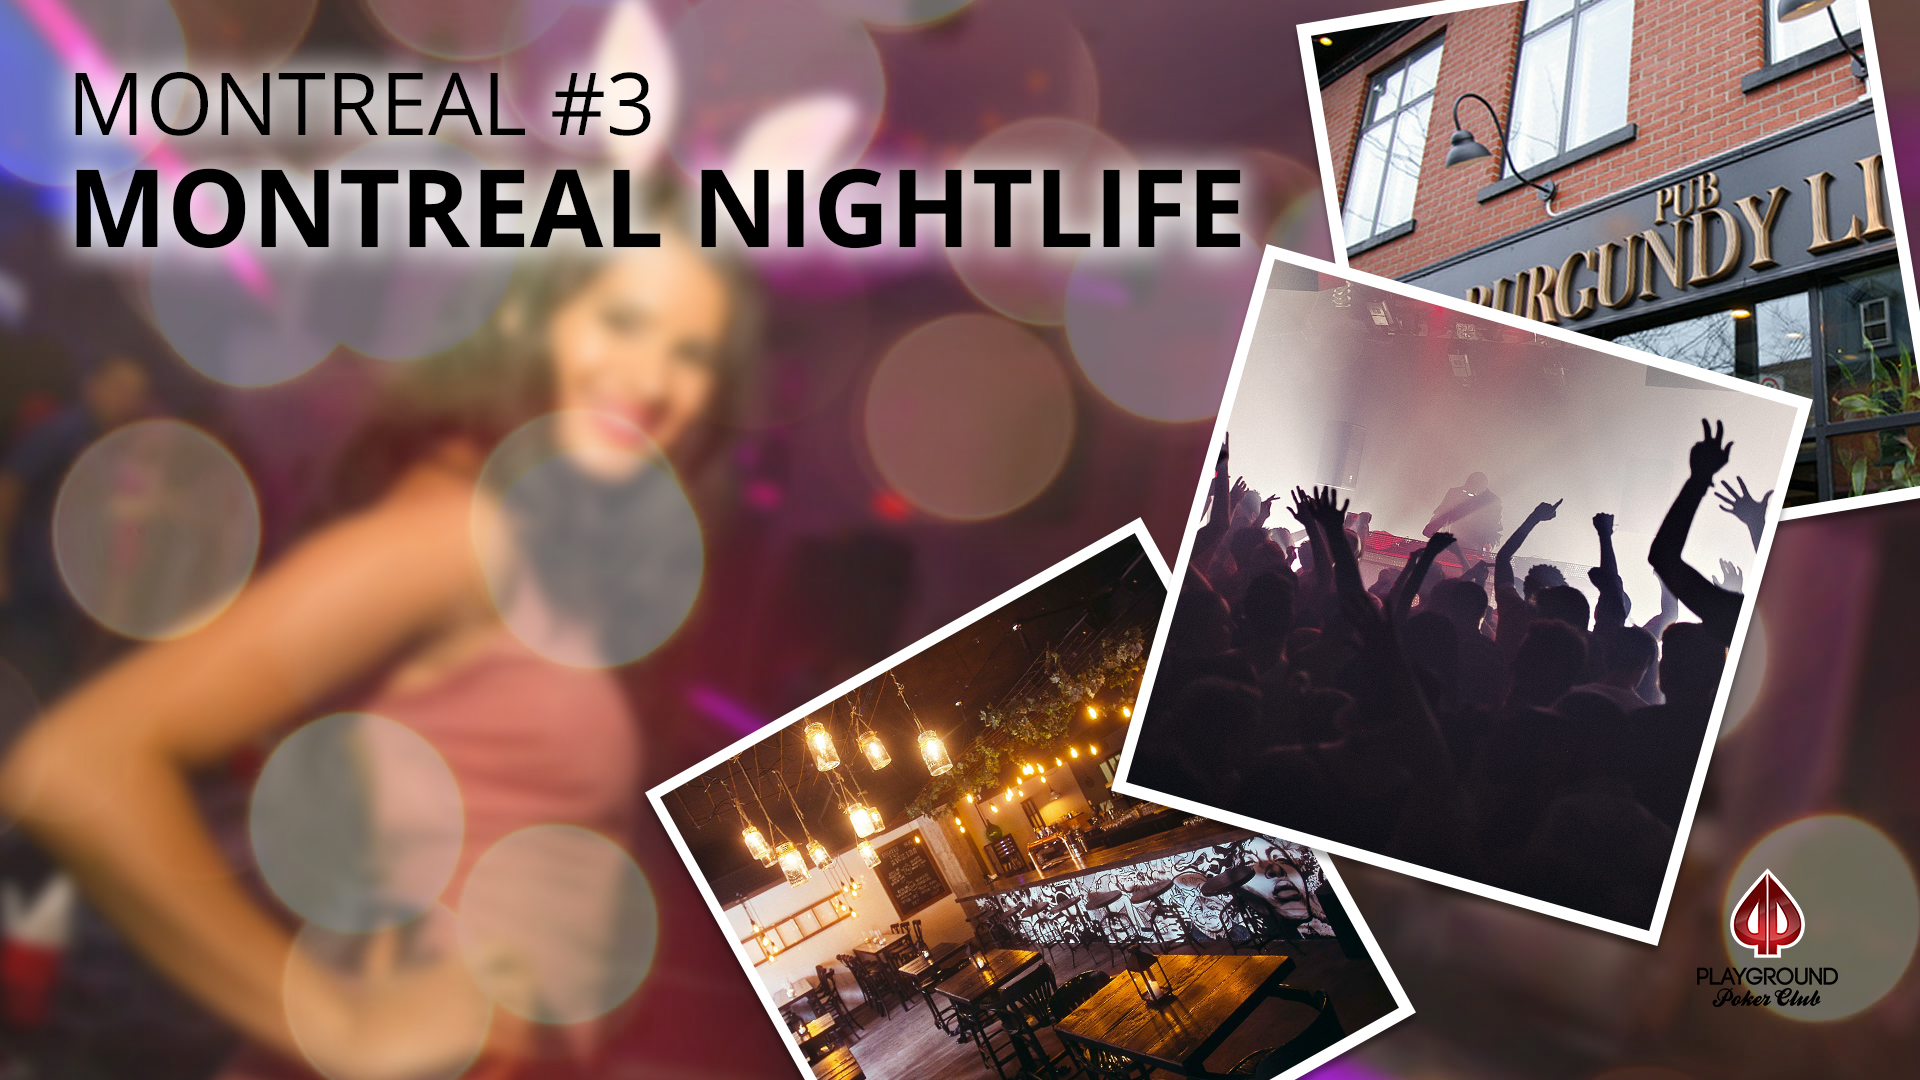 Number 3 on our Top 10 – Montreal Nightlife